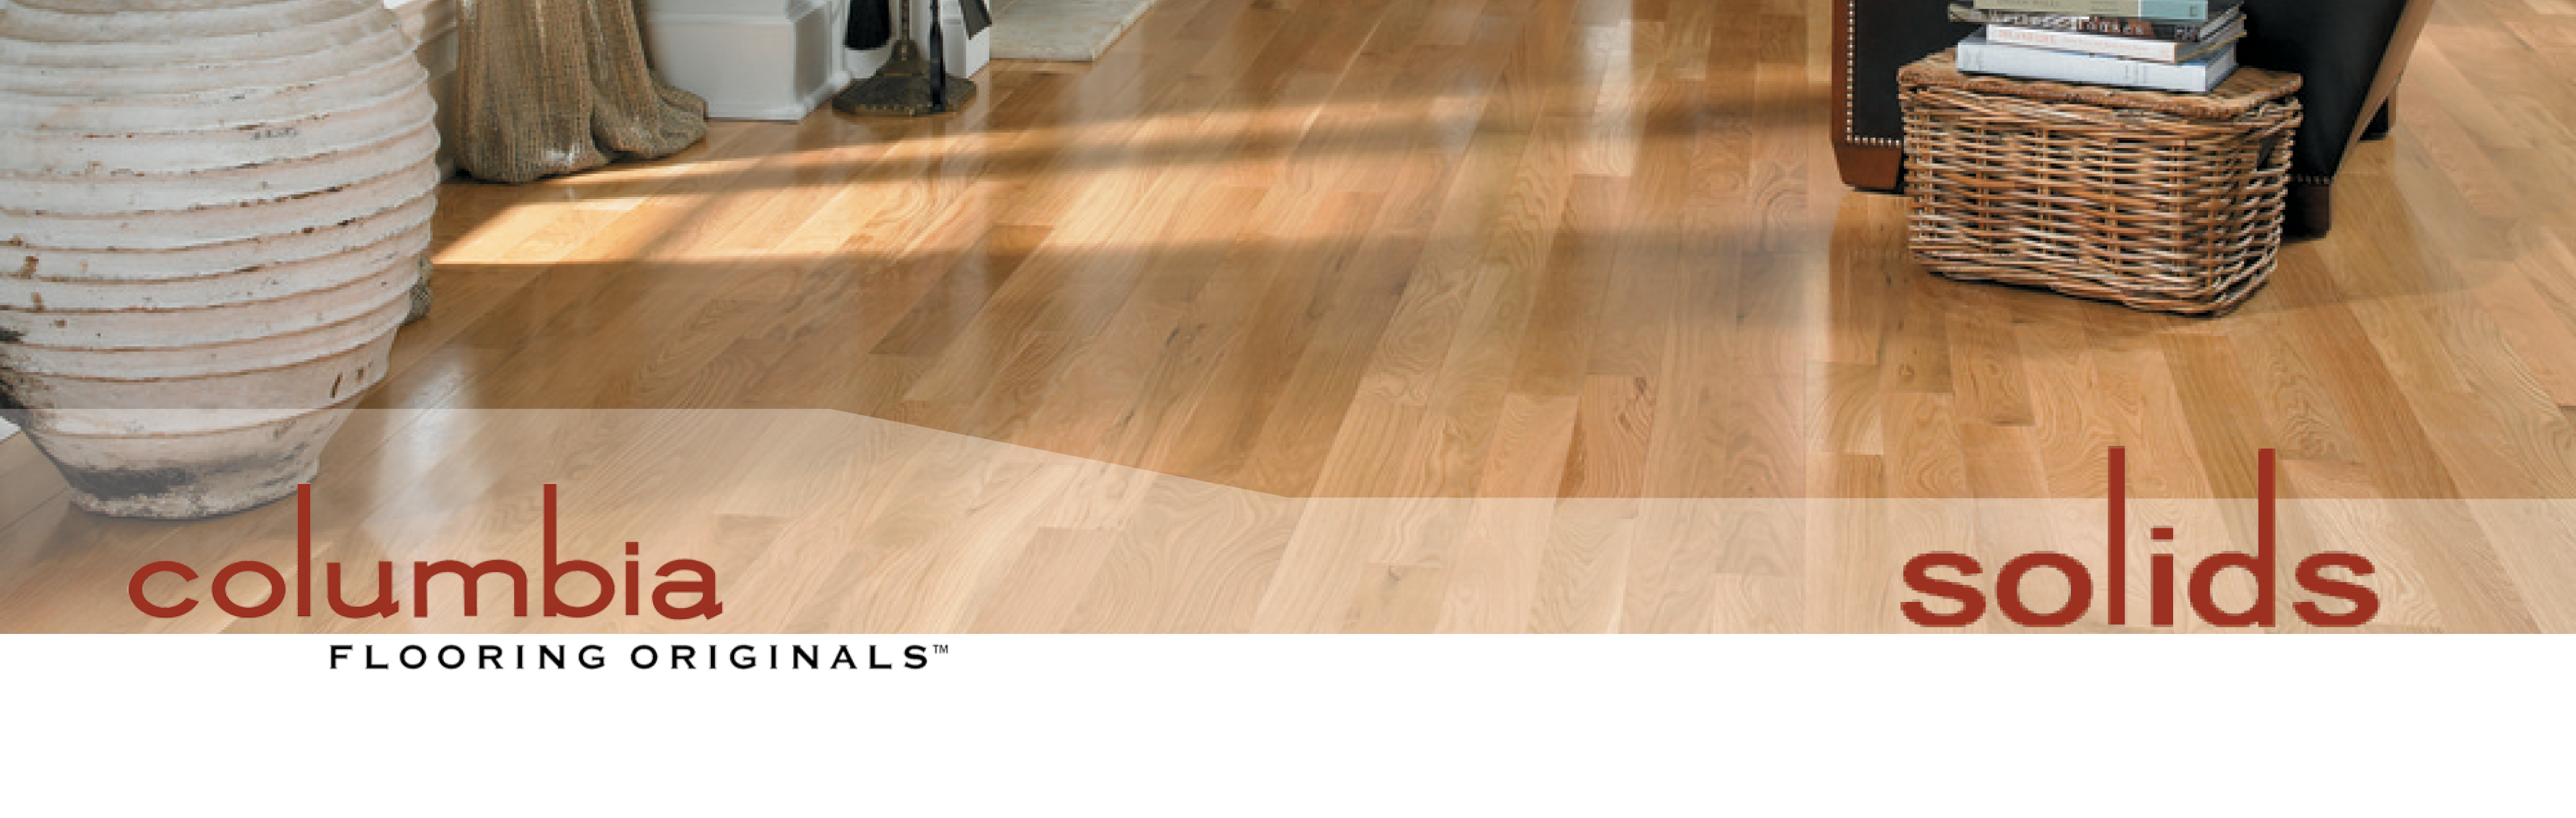 Columbia Flooring Solids